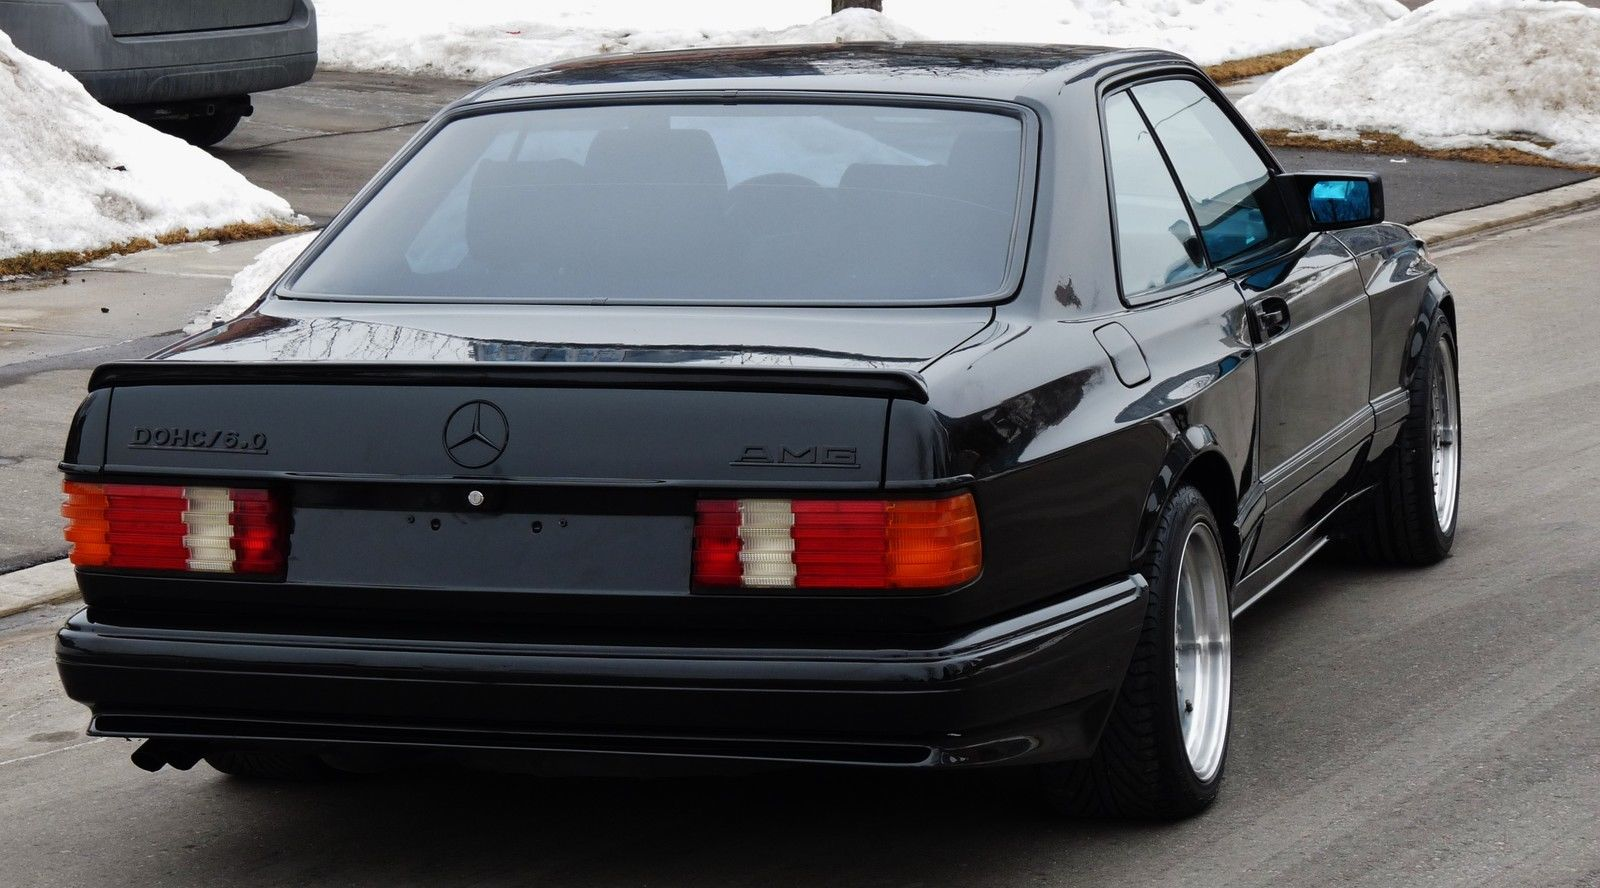 1990 mercedes-benz 560sec amg 6.0 widebody is badass, but is it